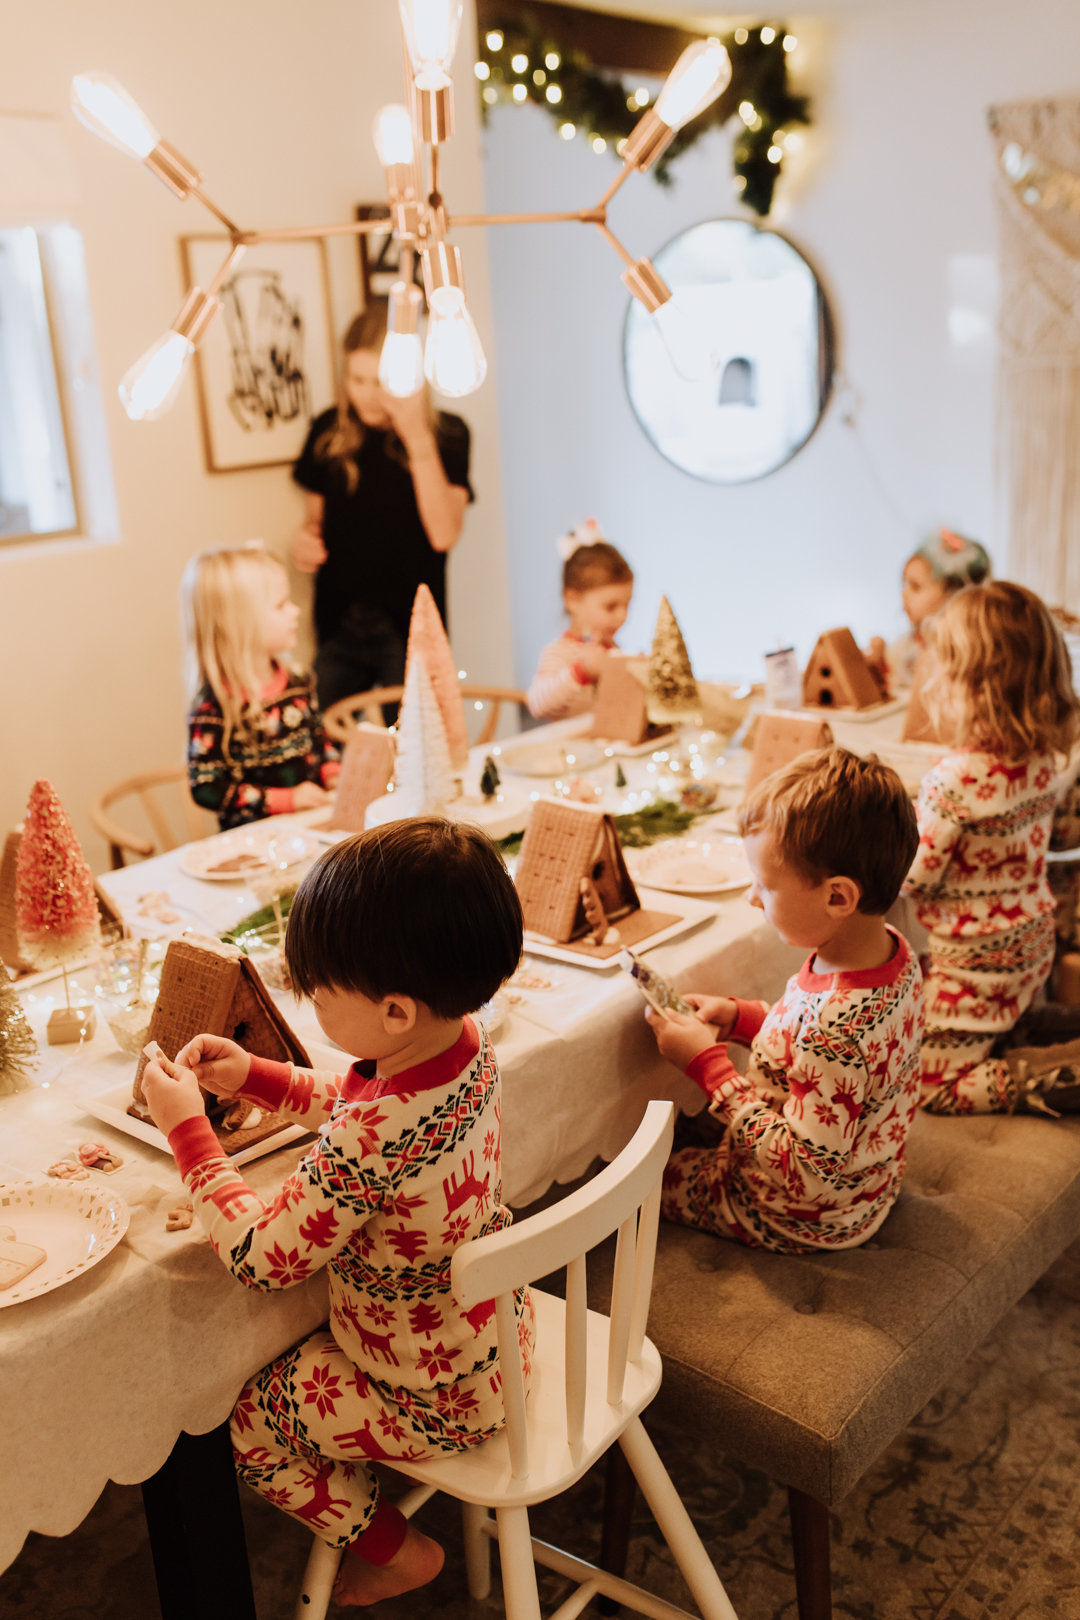 everyone ready to decorate their gingerbread houses and cookies at our simple party! | thelovedesigneldifecom #christmasjammies #gingerbreadshouses #christmaspartyidea #kidsparties